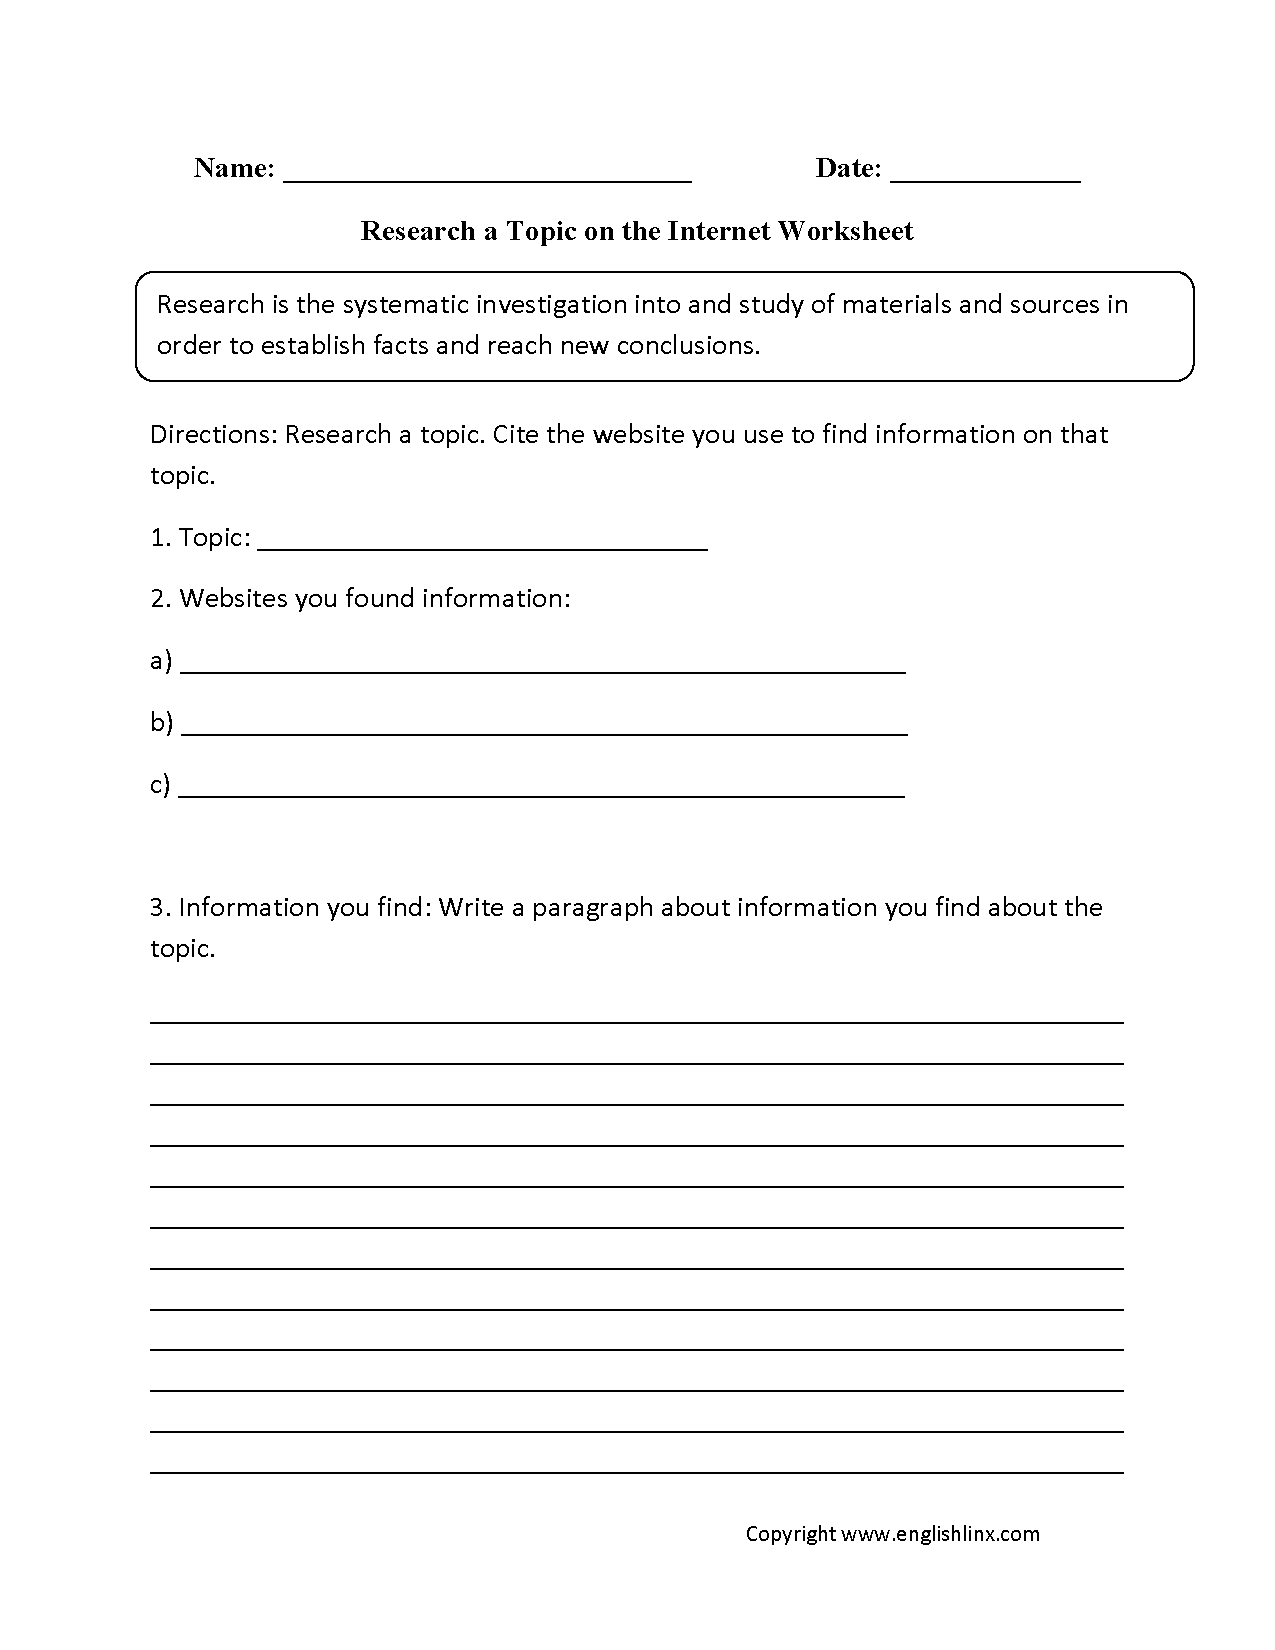 Aldiablosus  Scenic Englishlinxcom  Research Worksheets With Remarkable On The Internet Worksheet With Appealing Peter And The Wolf Printable Worksheets Also Worksheet Ecosystem In Addition Oval Worksheets And Frindle Worksheets As Well As Vertical Motion Problems Worksheet Additionally Oil Pastel Worksheet From Englishlinxcom With Aldiablosus  Remarkable Englishlinxcom  Research Worksheets With Appealing On The Internet Worksheet And Scenic Peter And The Wolf Printable Worksheets Also Worksheet Ecosystem In Addition Oval Worksheets From Englishlinxcom